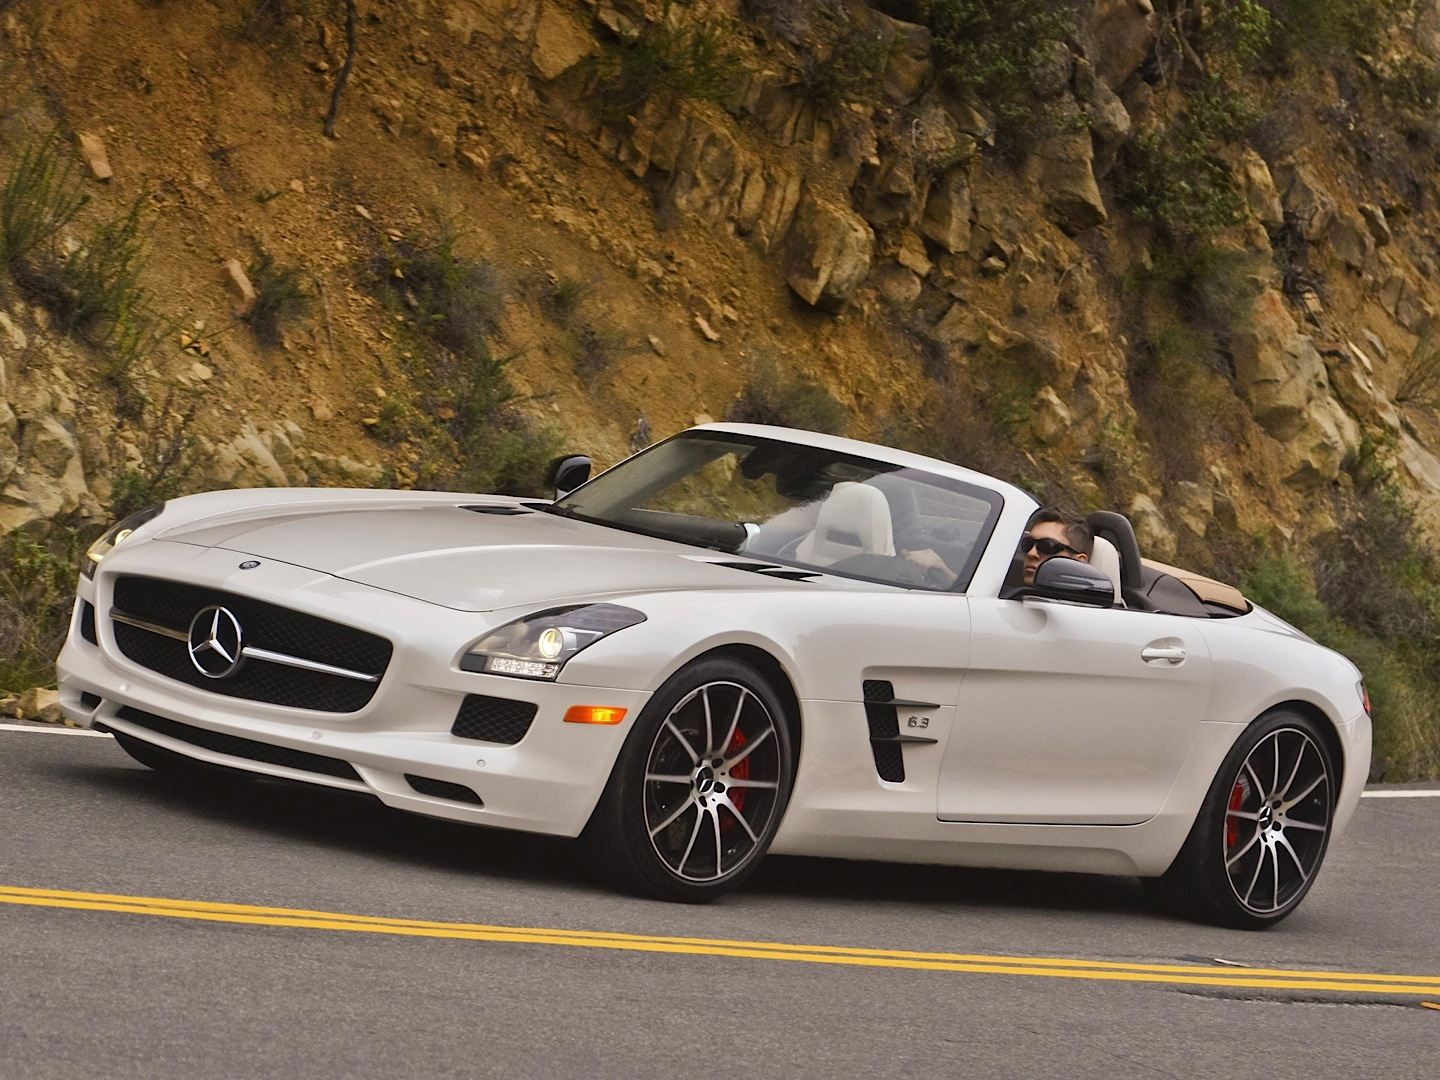 mercedes benz sls amg gt roadster gets reviewed by autoblog autoevolution. Black Bedroom Furniture Sets. Home Design Ideas